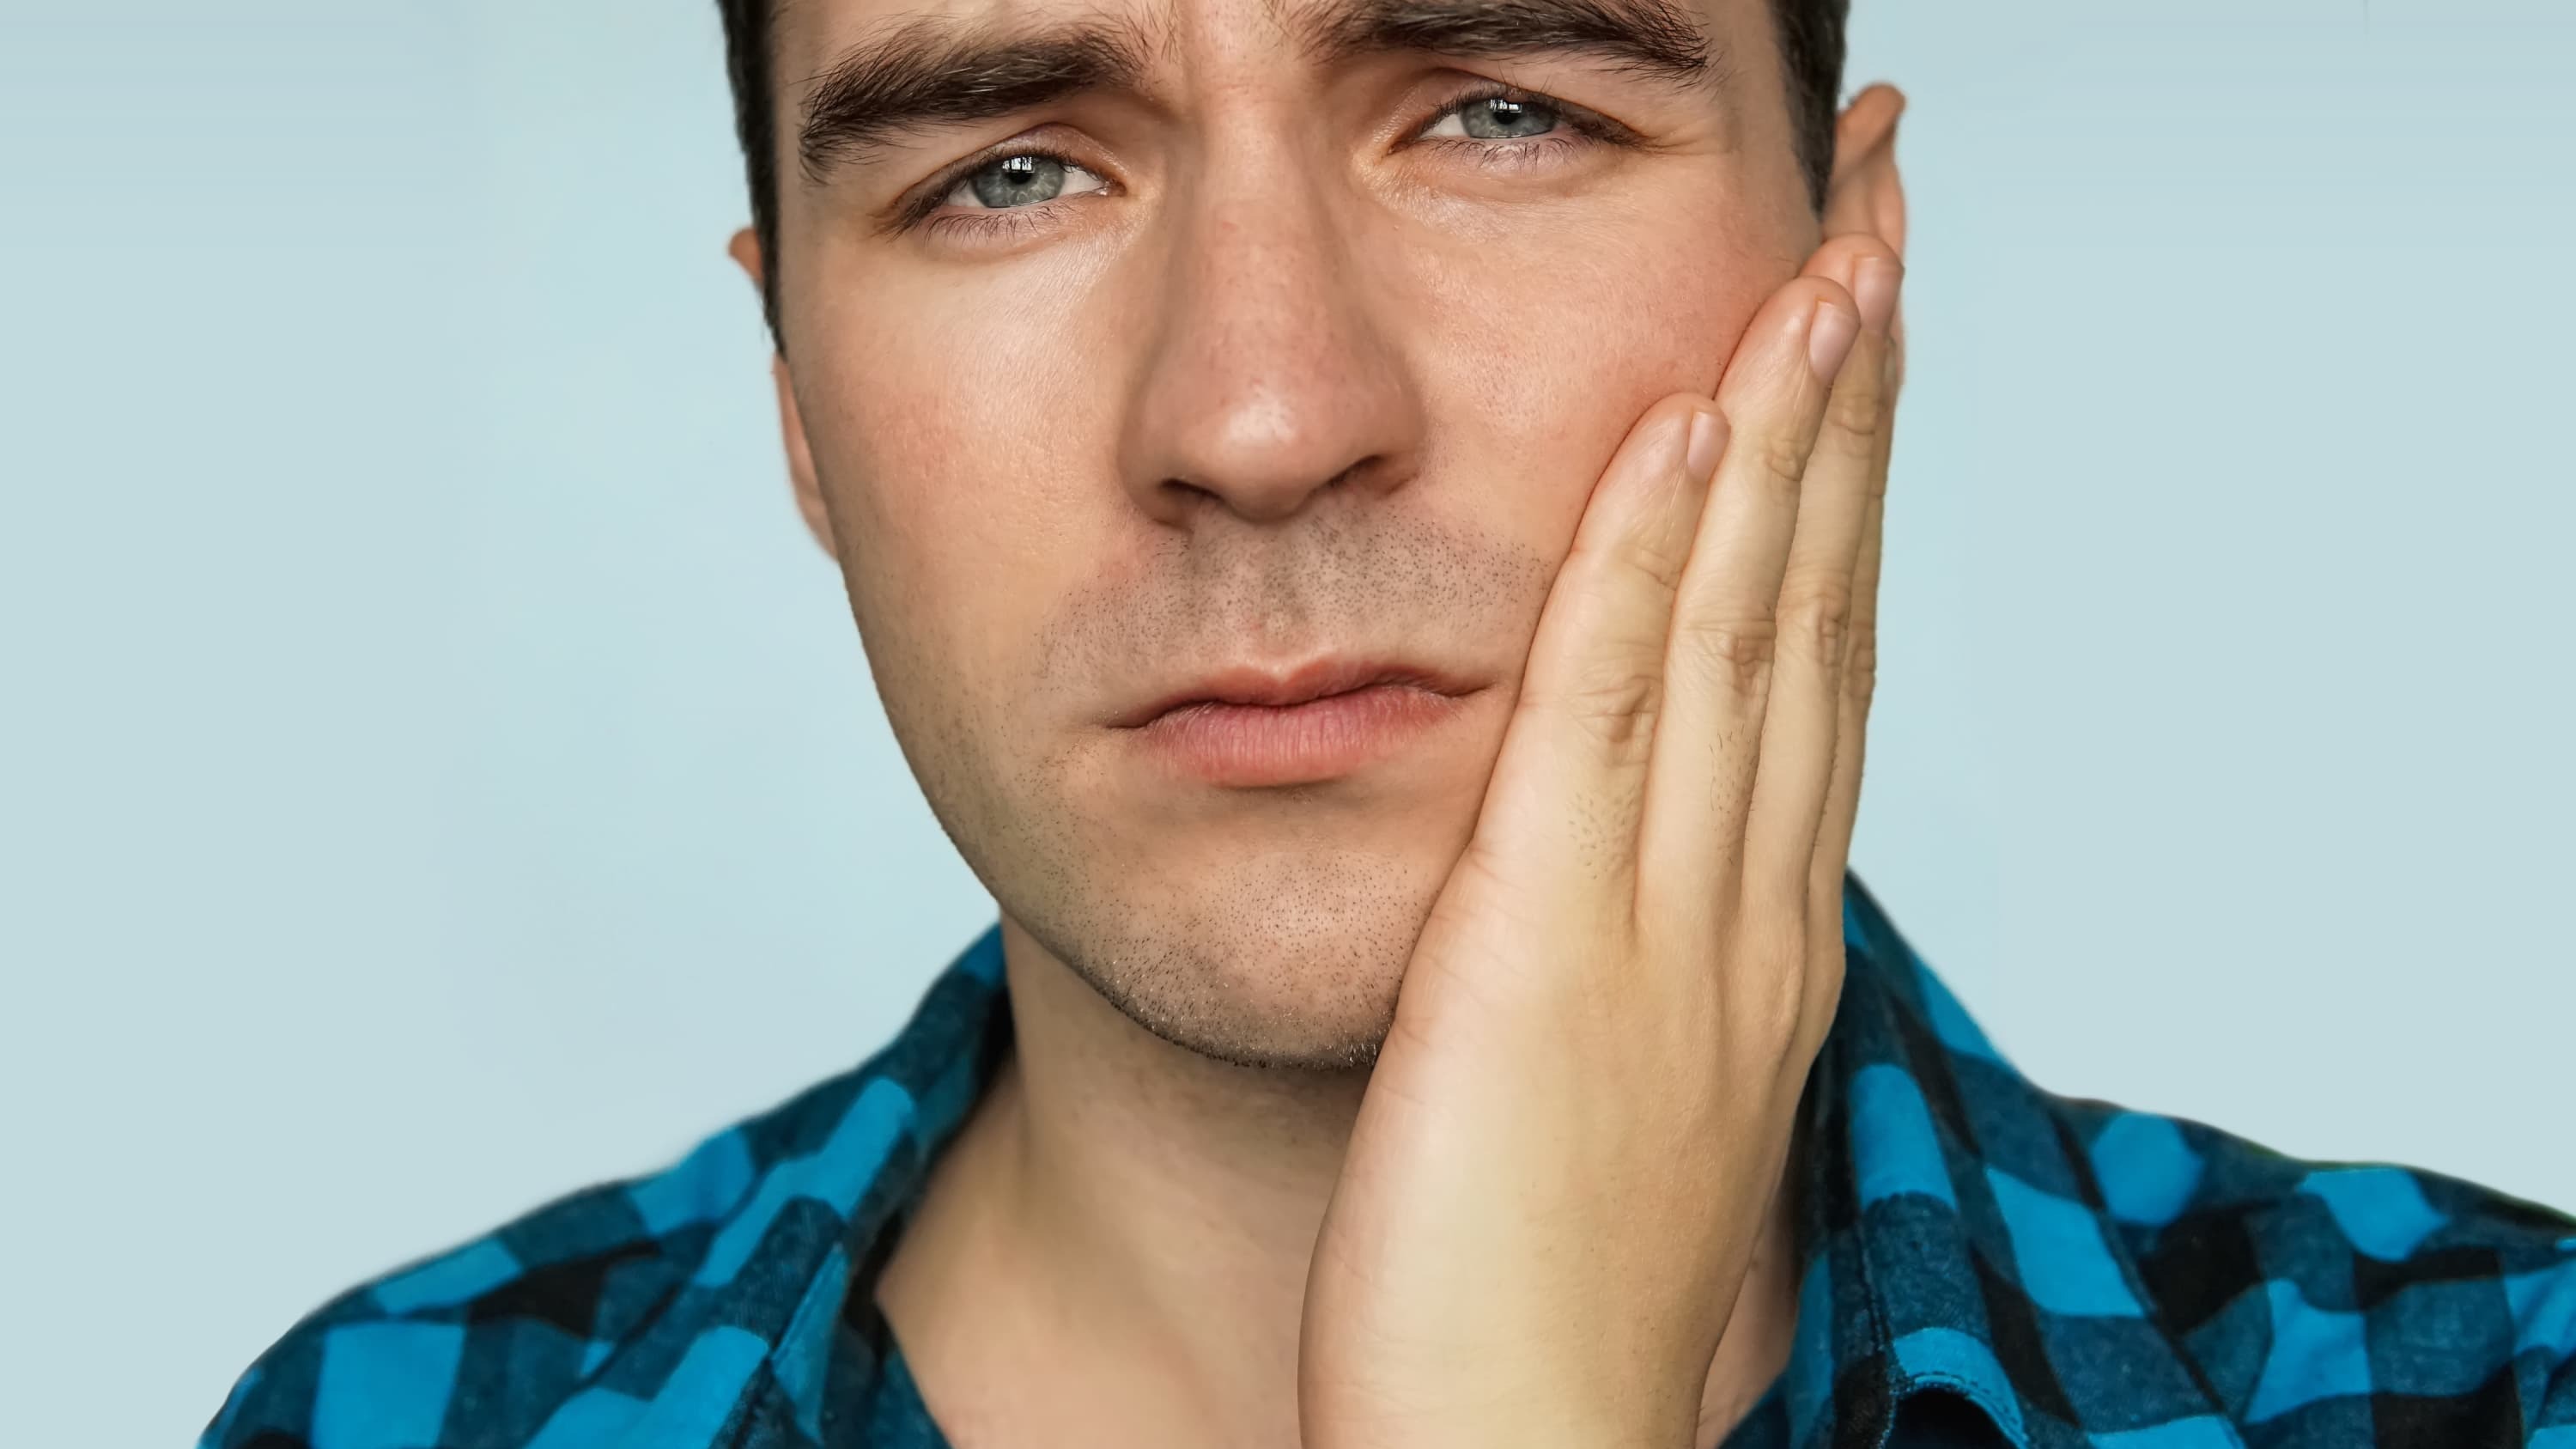 A man with trigeminal neuralgia touching his jaw who is in pain.